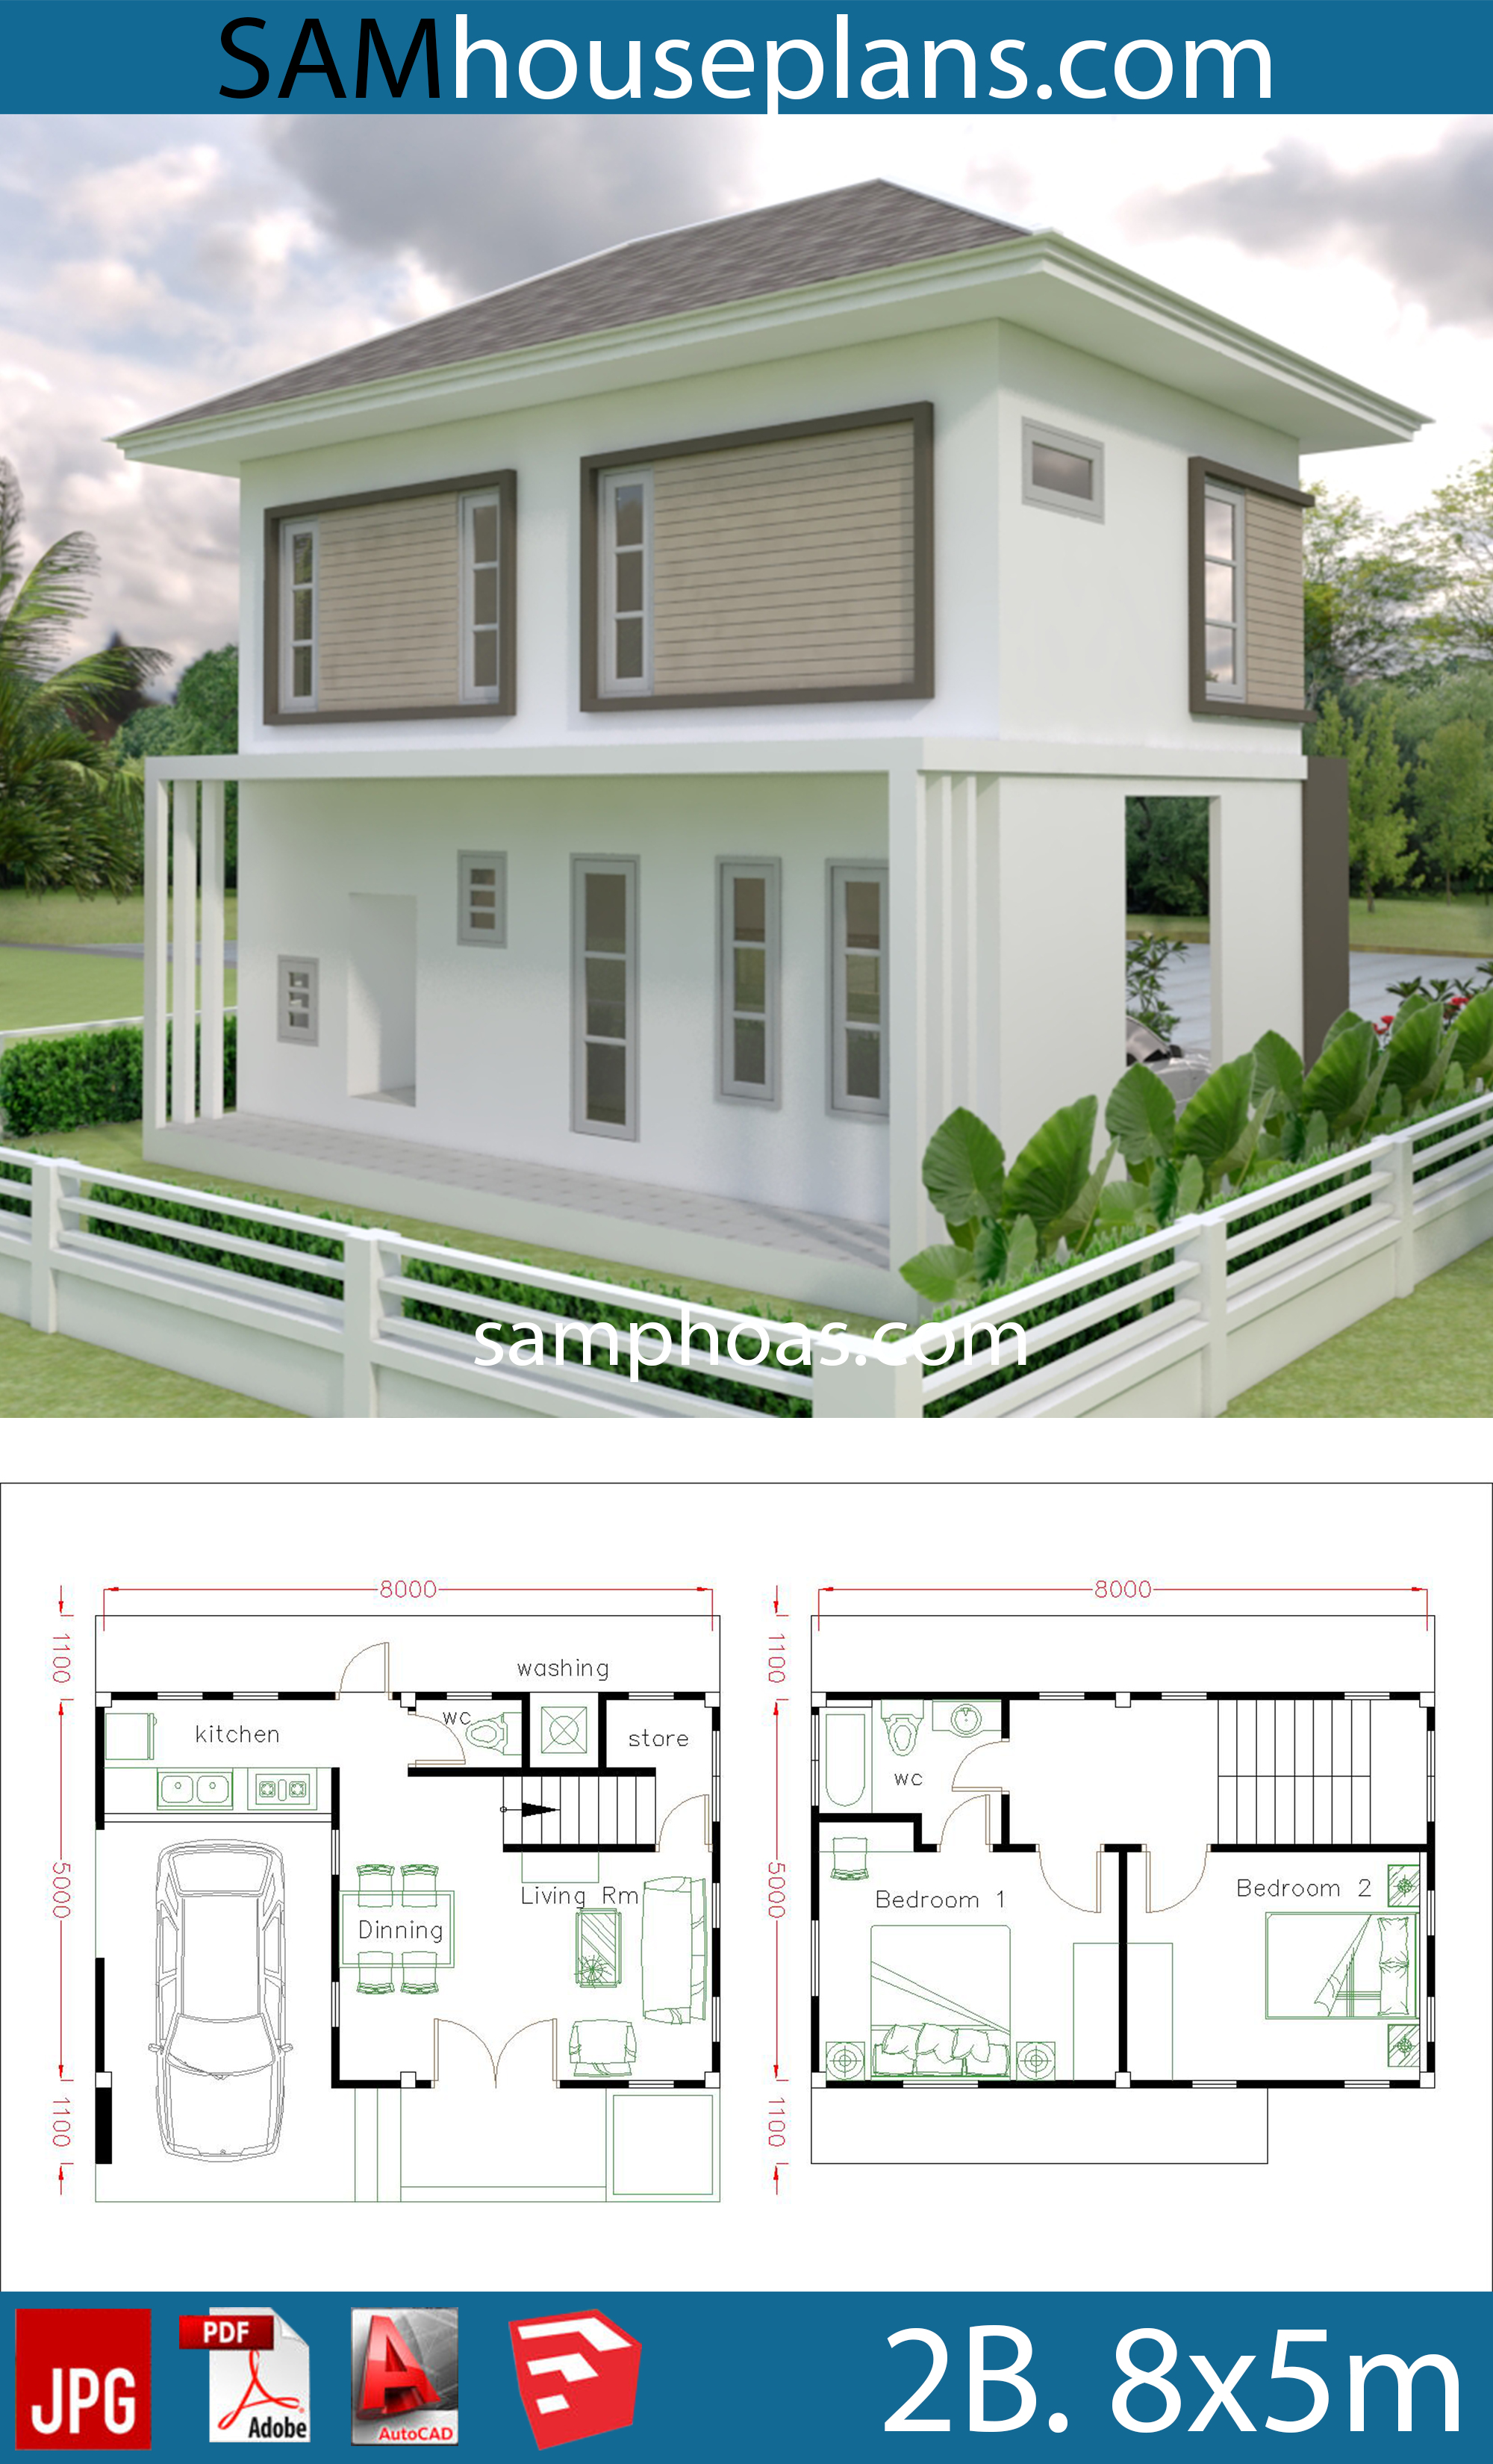 Small Home design Plan 8x5m with 2 bedrooms on beach house plans 2 bedroom, cottage house plans 2 bedroom, split level house plans 2 bedroom, contemporary house plans 2 bedroom, small house plans 2 bedroom, ranch house plans 2 bedroom,